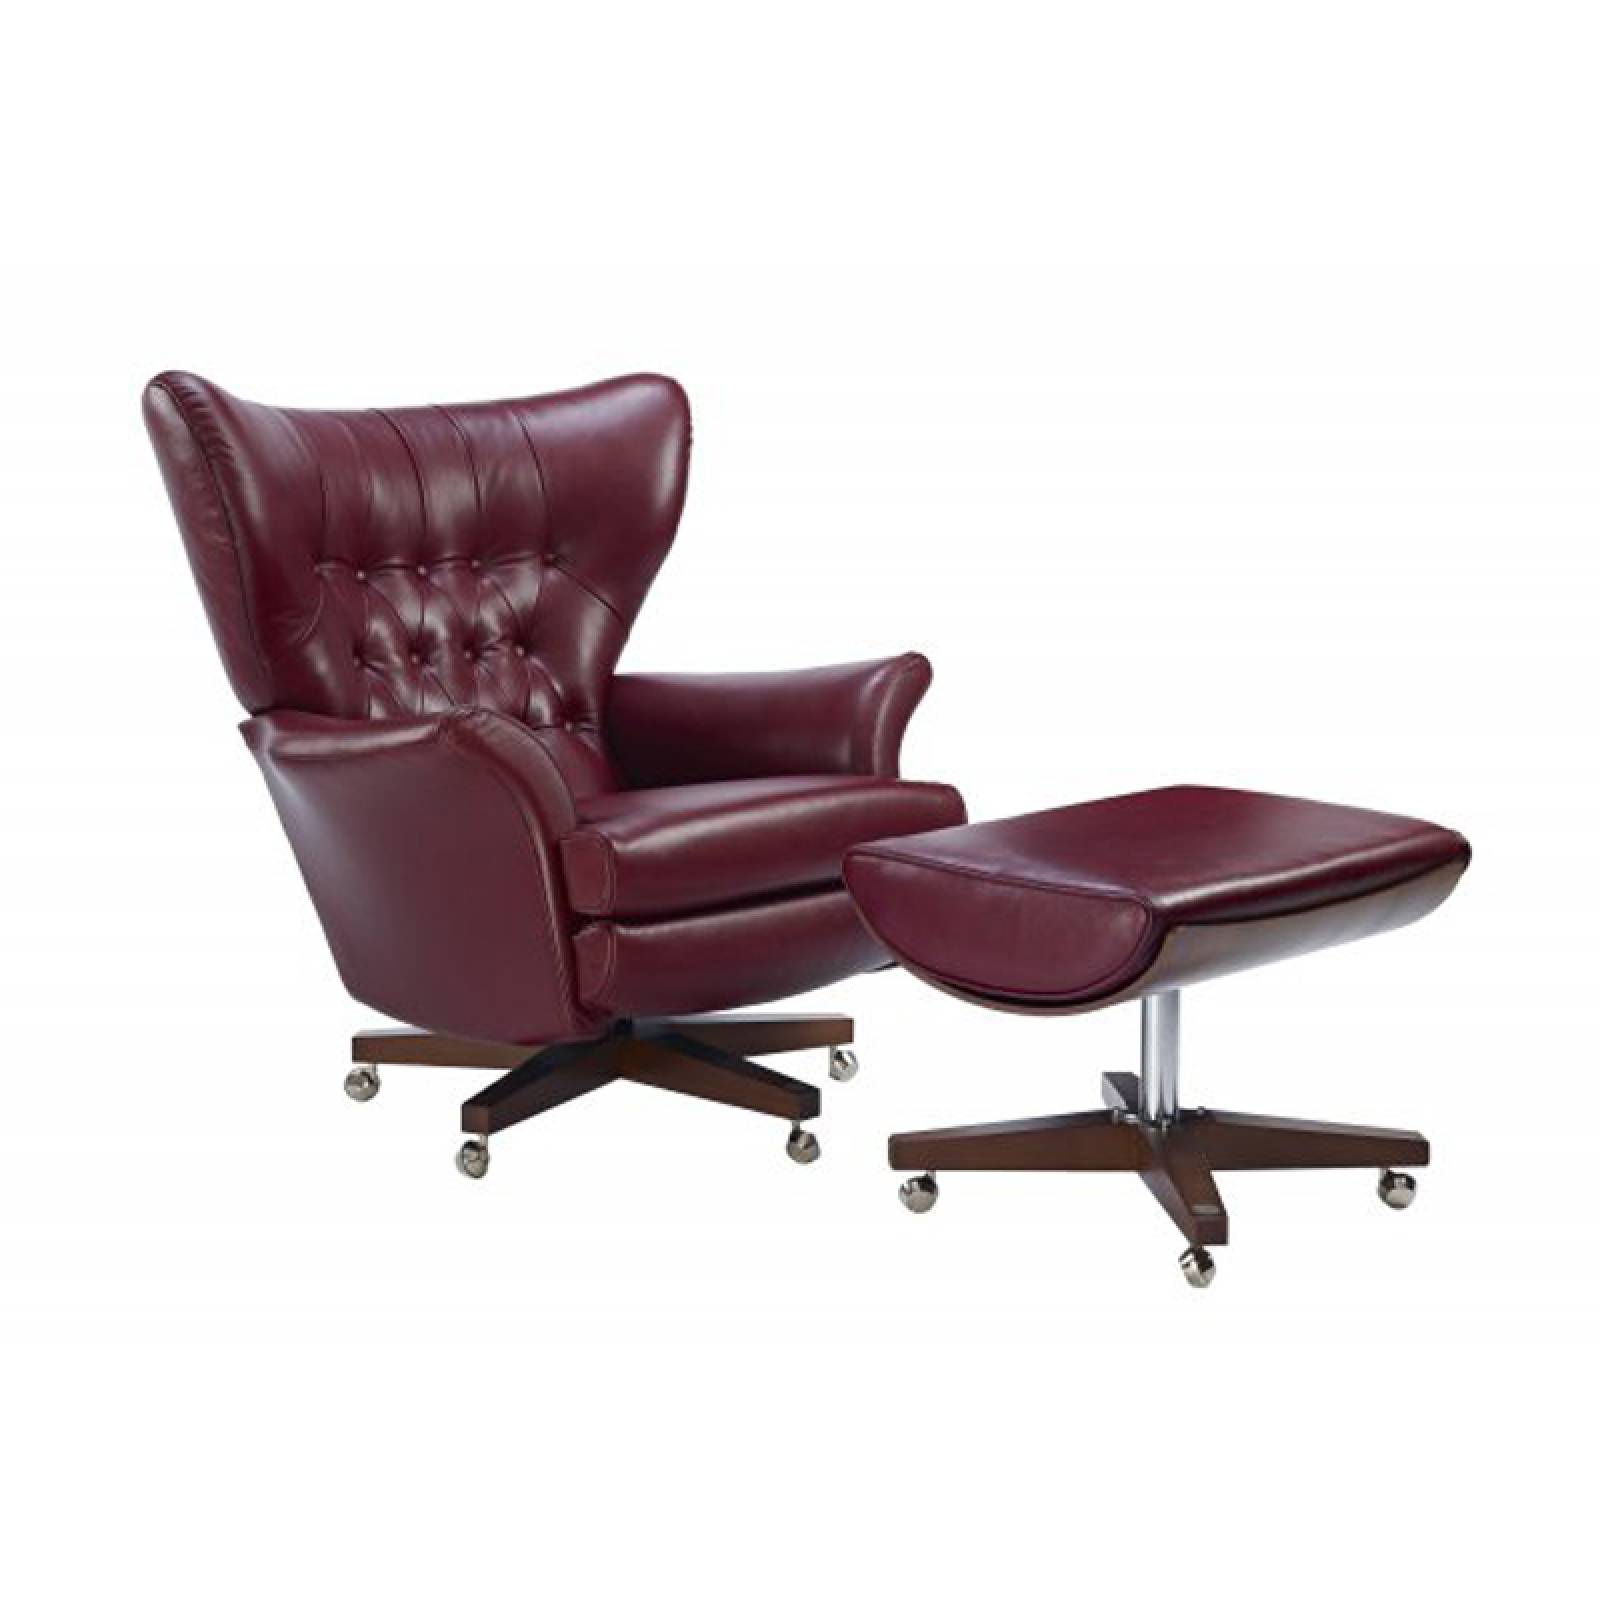 G Plan Vintage The Sixty Two Leather Footstool thumbnails